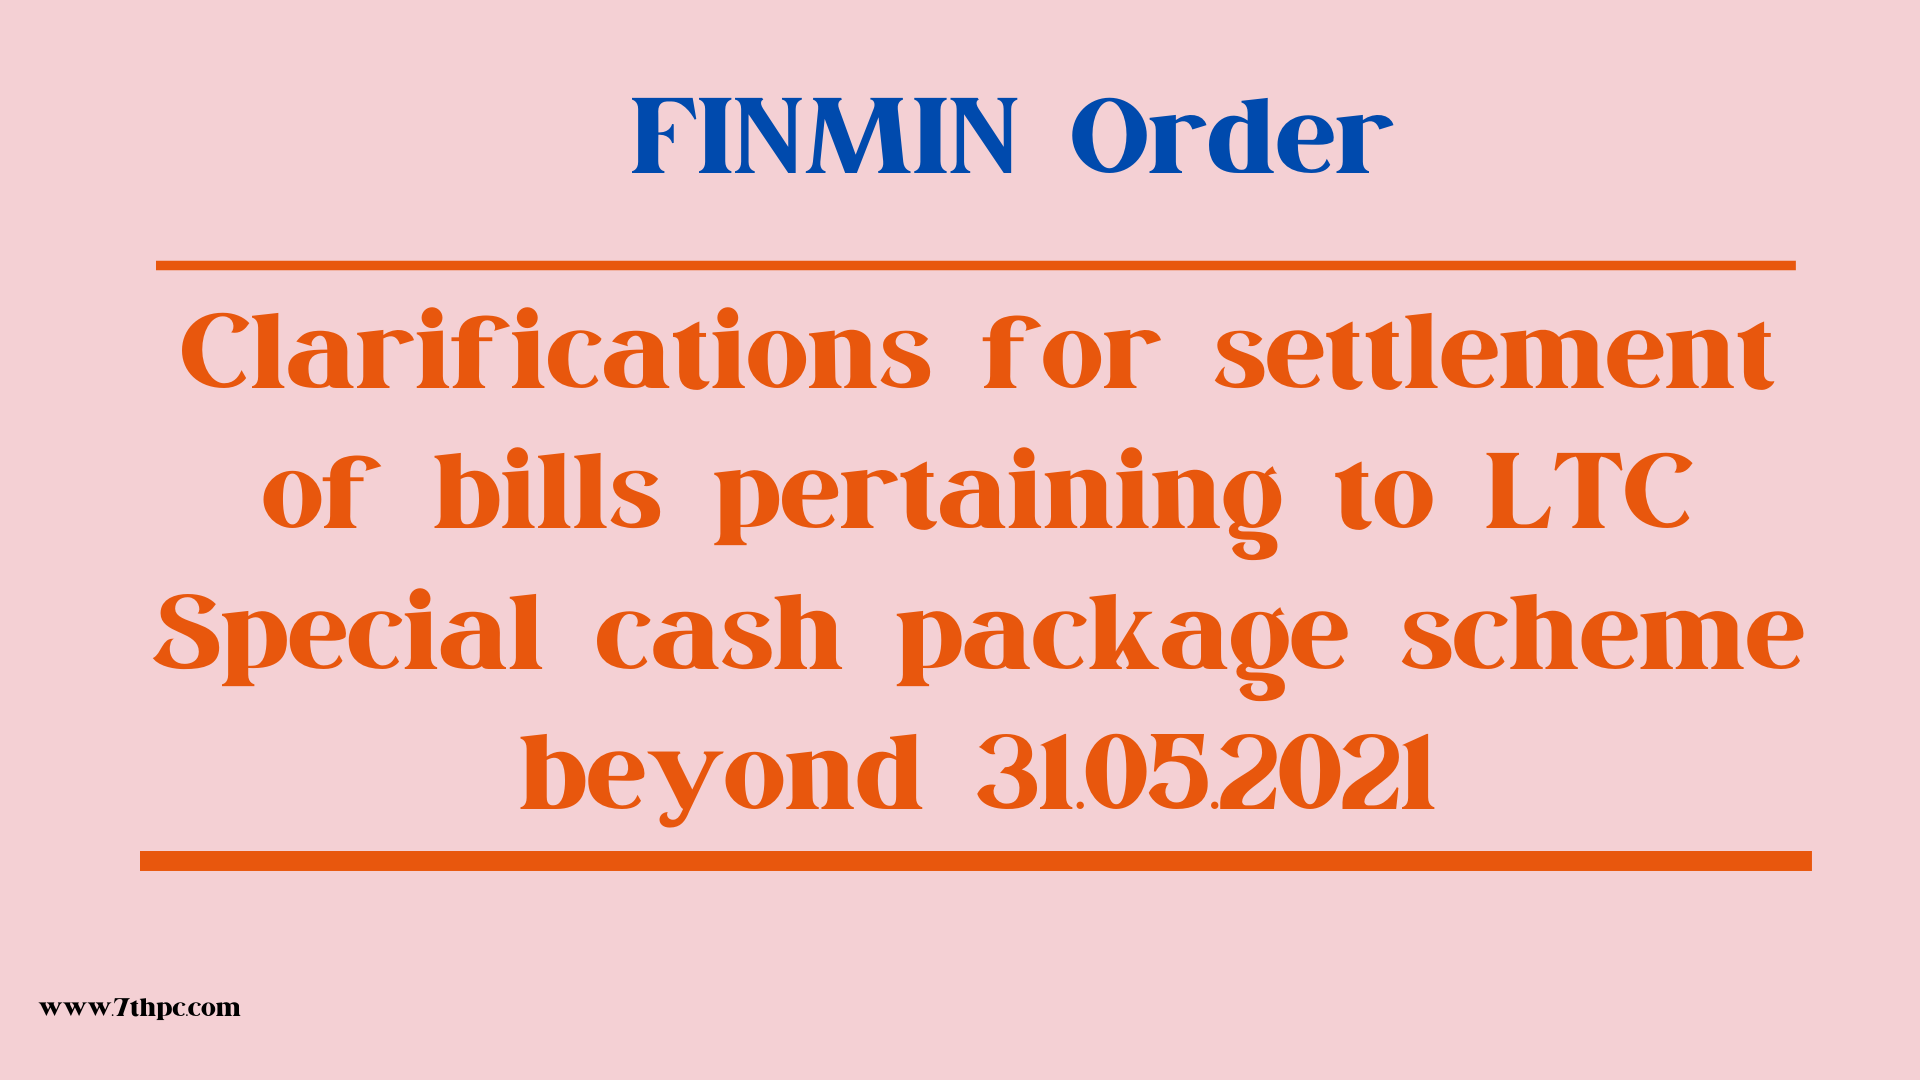 Clarifications for settlement of bills pertaining to LTC Special cash package scheme beyond 31.05.2021